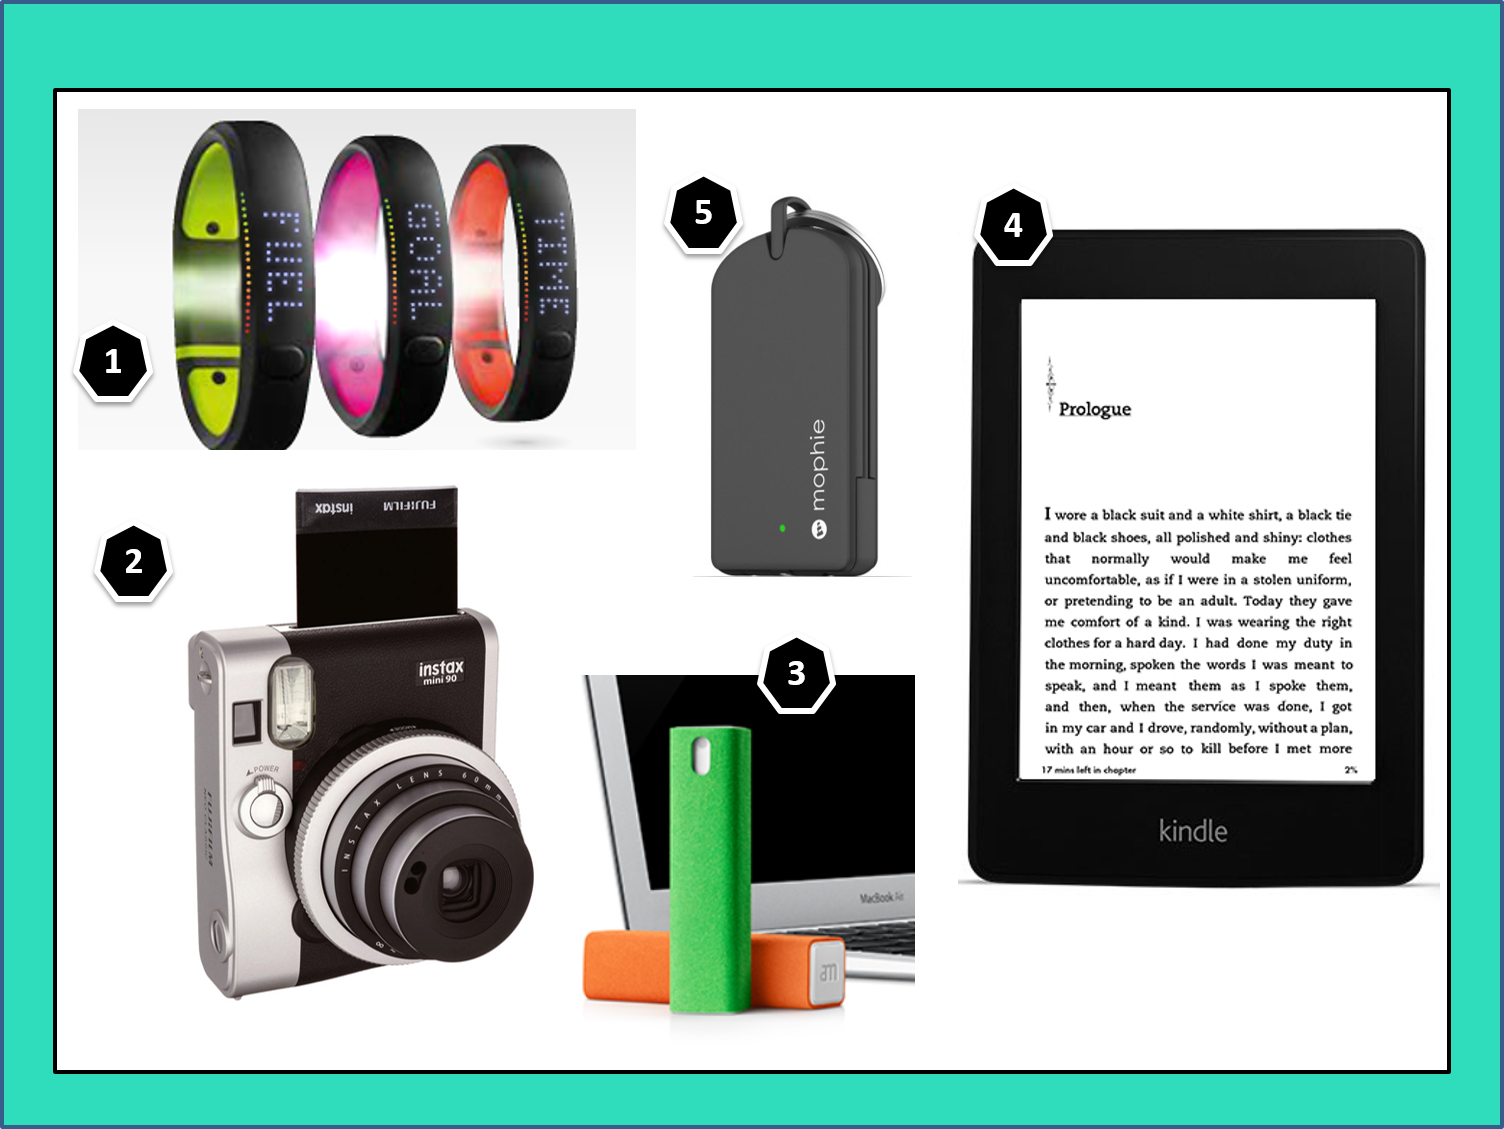 modern gadgets and technology The 100 coolest tech gadgets of 2018 think: invincible action cameras, waterproof bluetooth speakers, a mobile printer, a compact phone charger, and more.